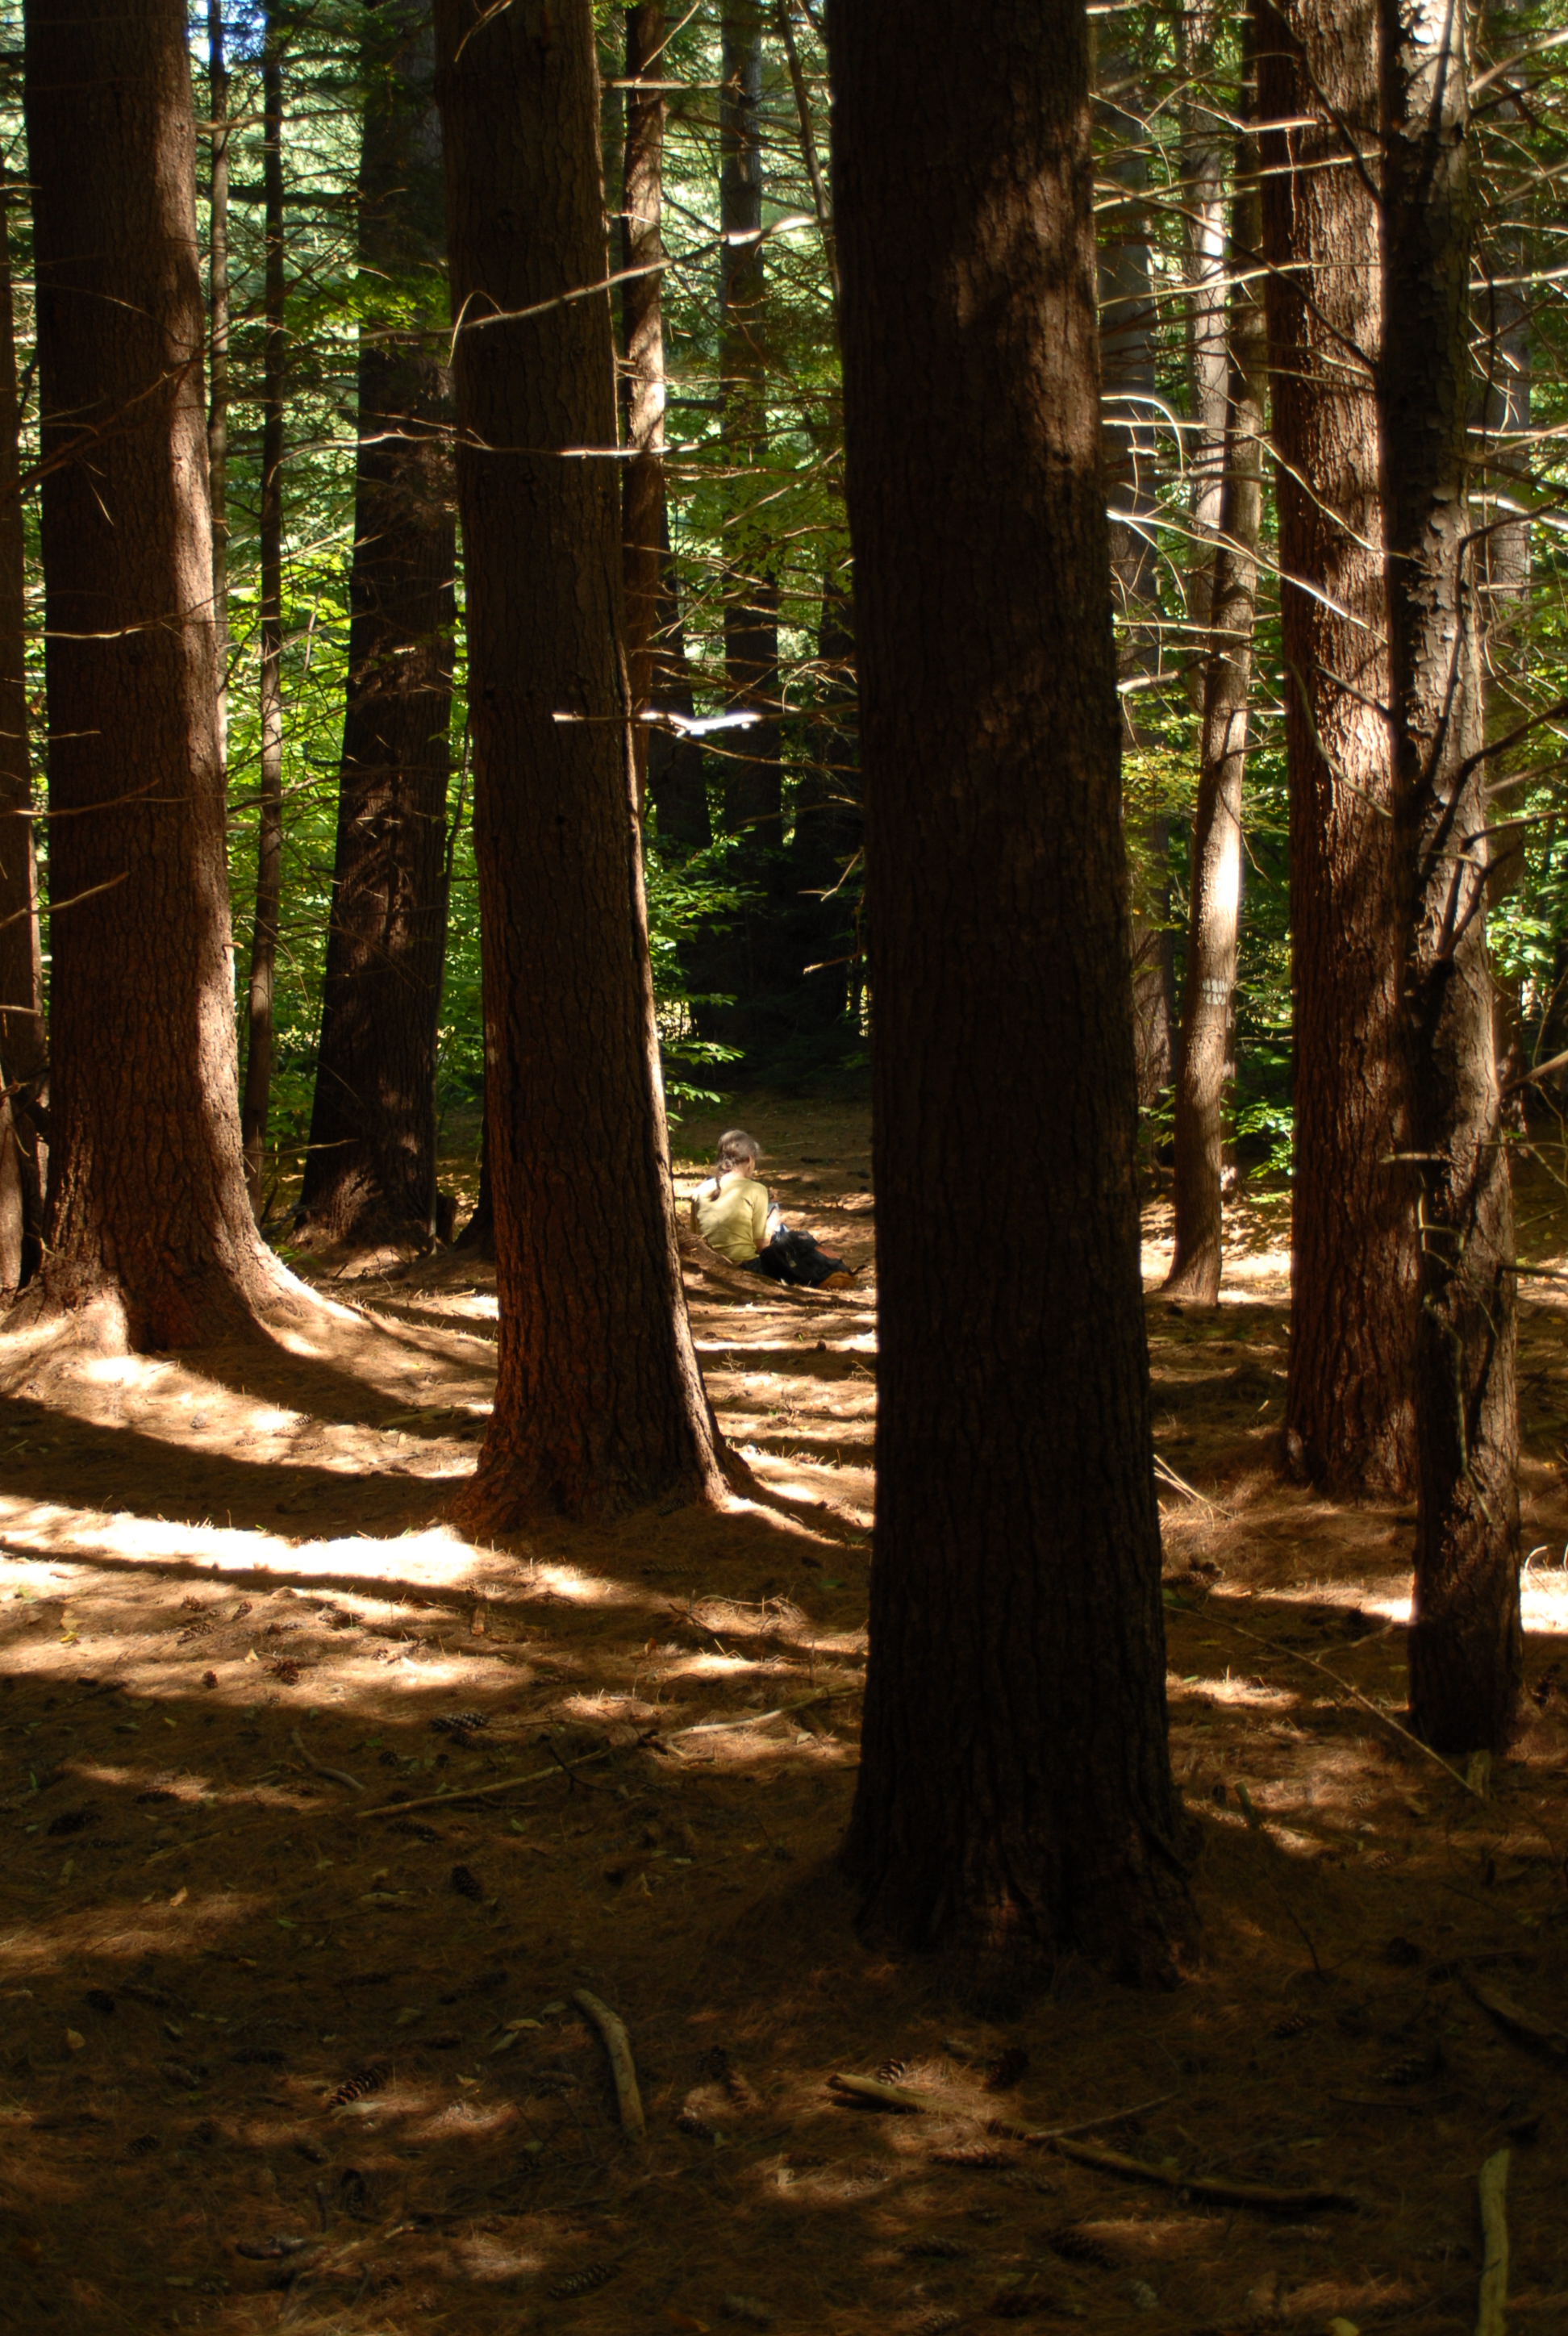 Mohawk Trail State Forest — Old Growth Forest Network